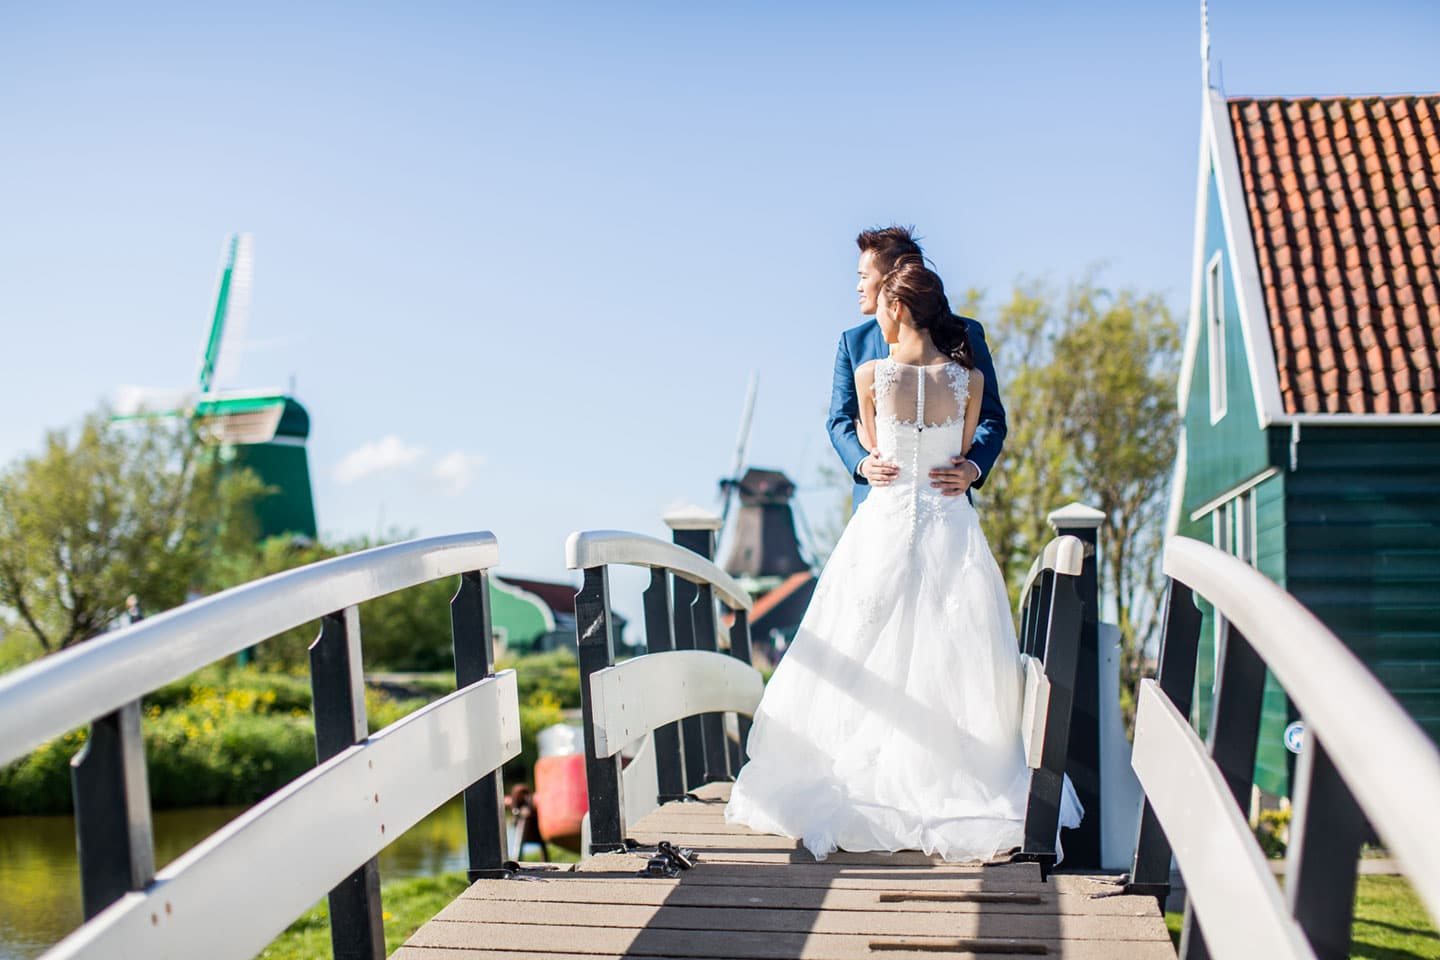 10-pre-wedding-loveshoot-Zaanse-Schans